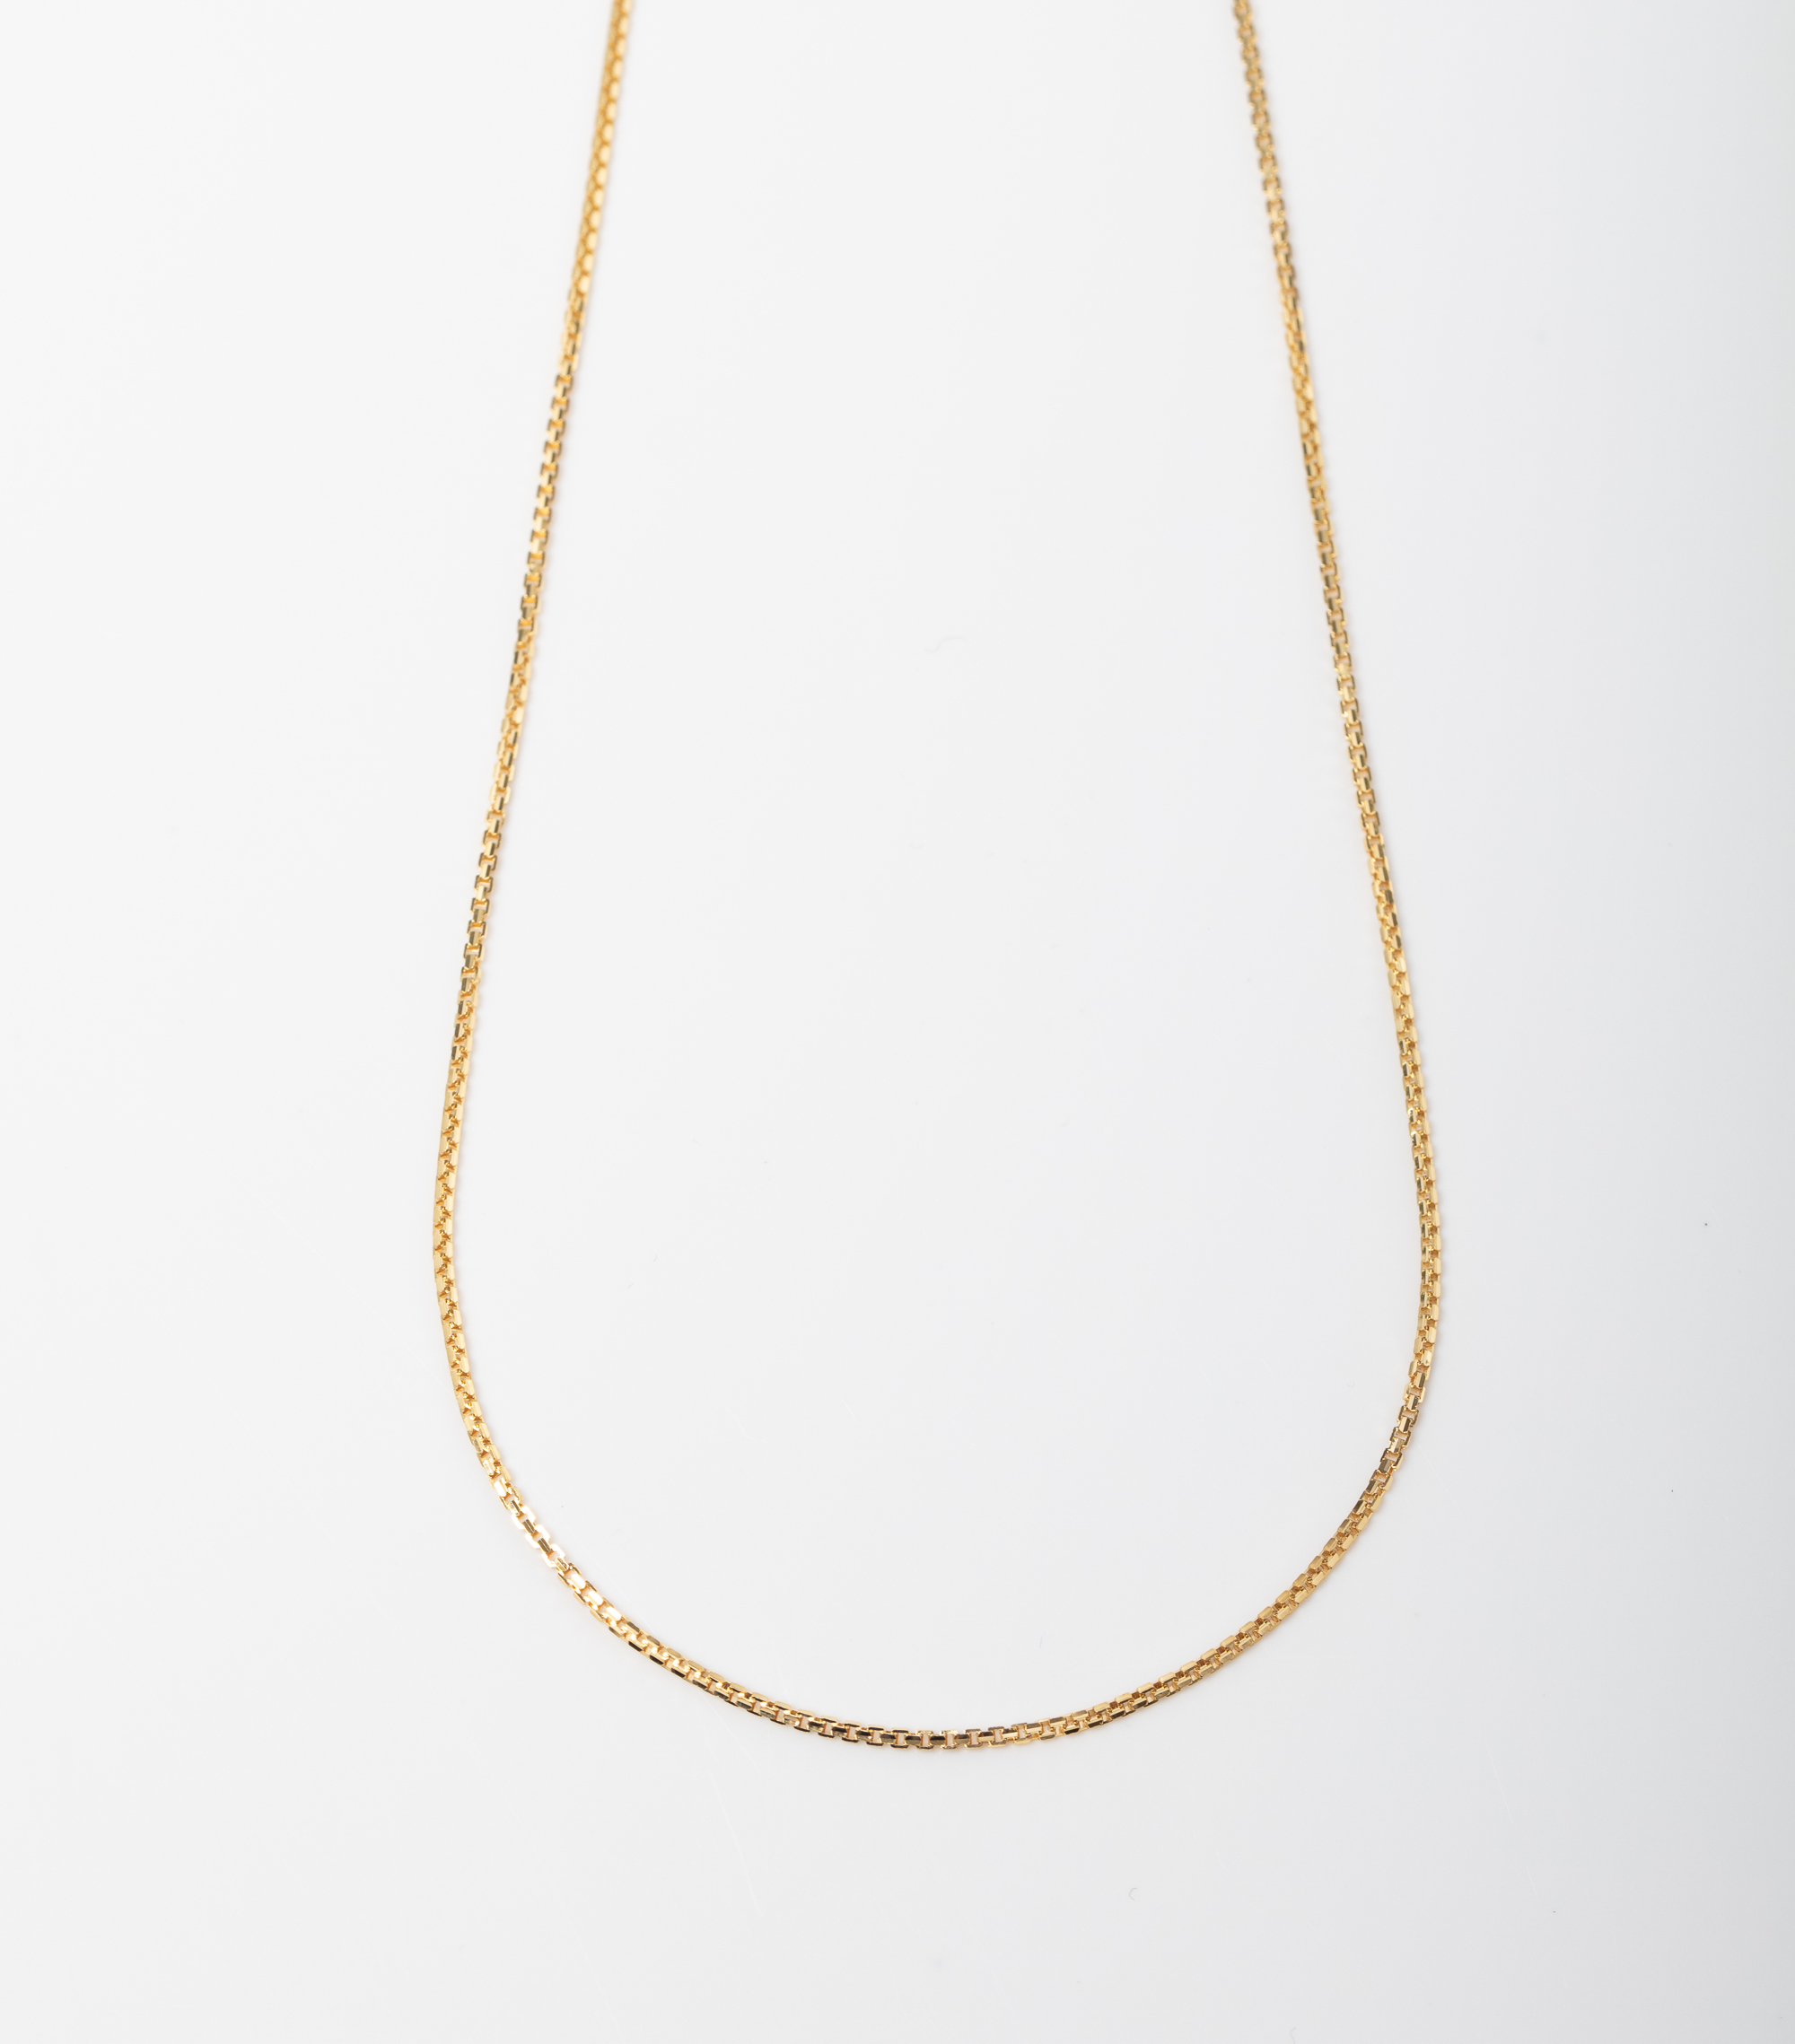 A 9CT GOLD BOX CHAIN WITH WHITE GOLD PAVE DETAIL